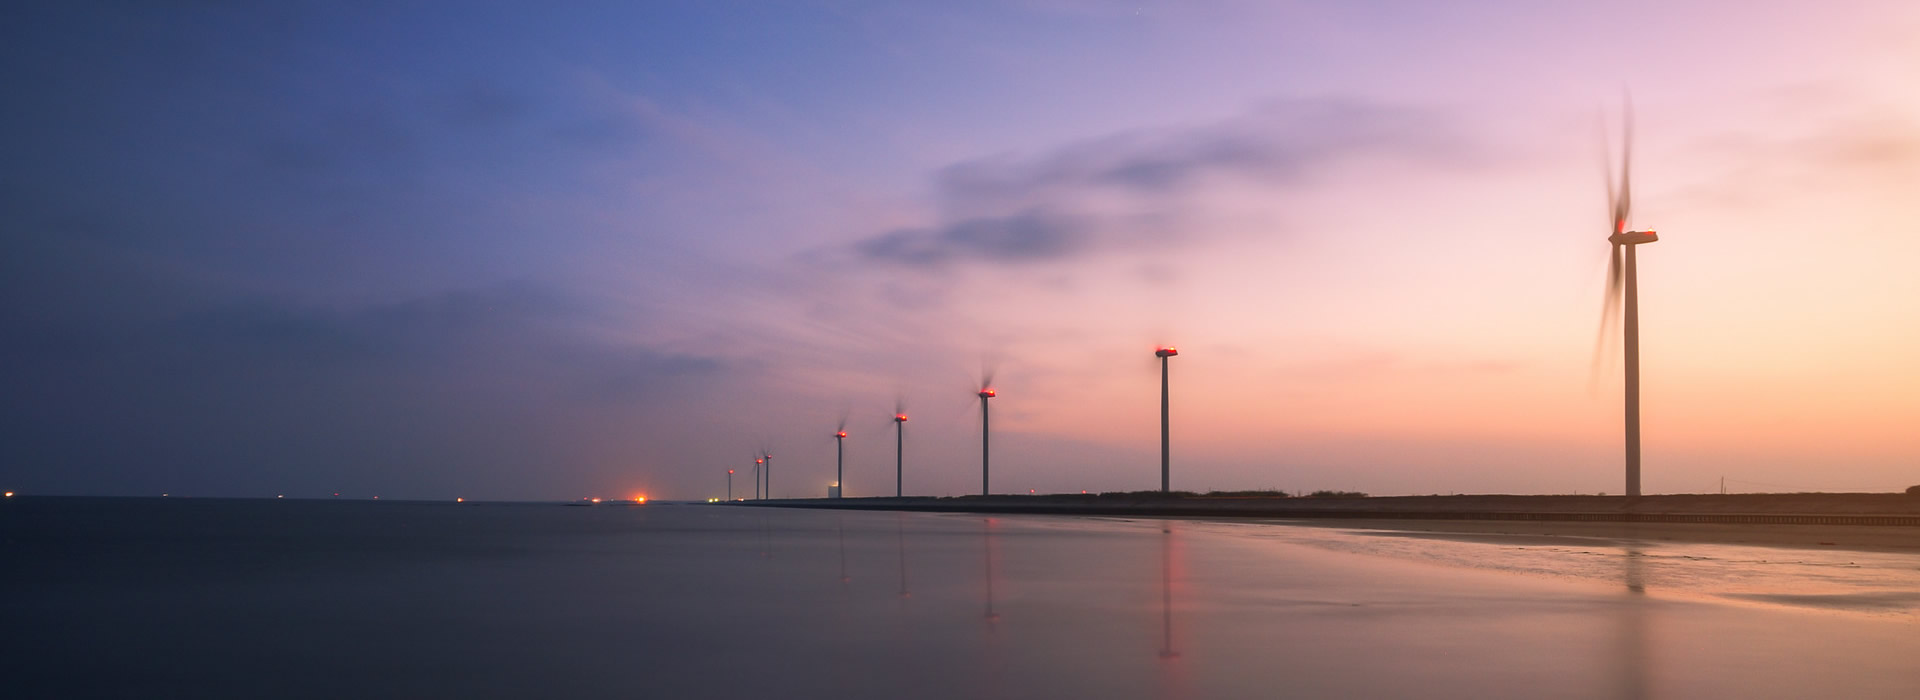 Wind power equiment